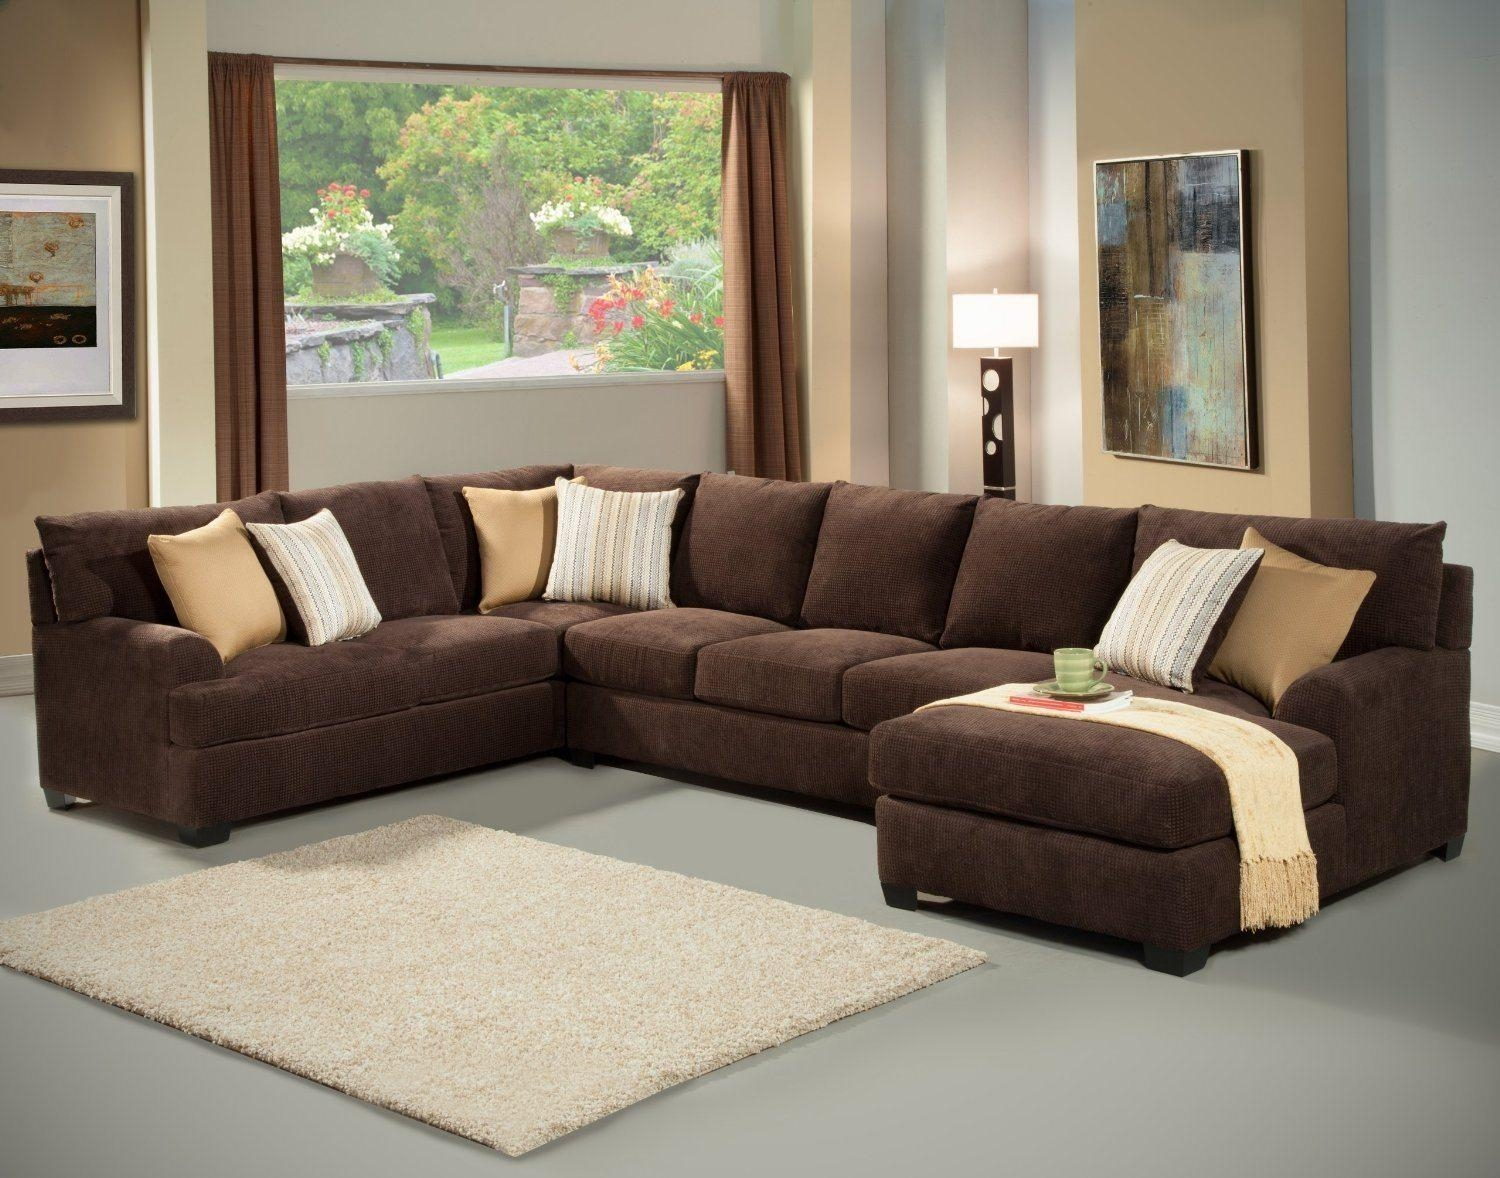 Queen Sofa Bed Sectional Regarding Queen Sofa Sleeper Sectional Microfiber (View 10 of 20)